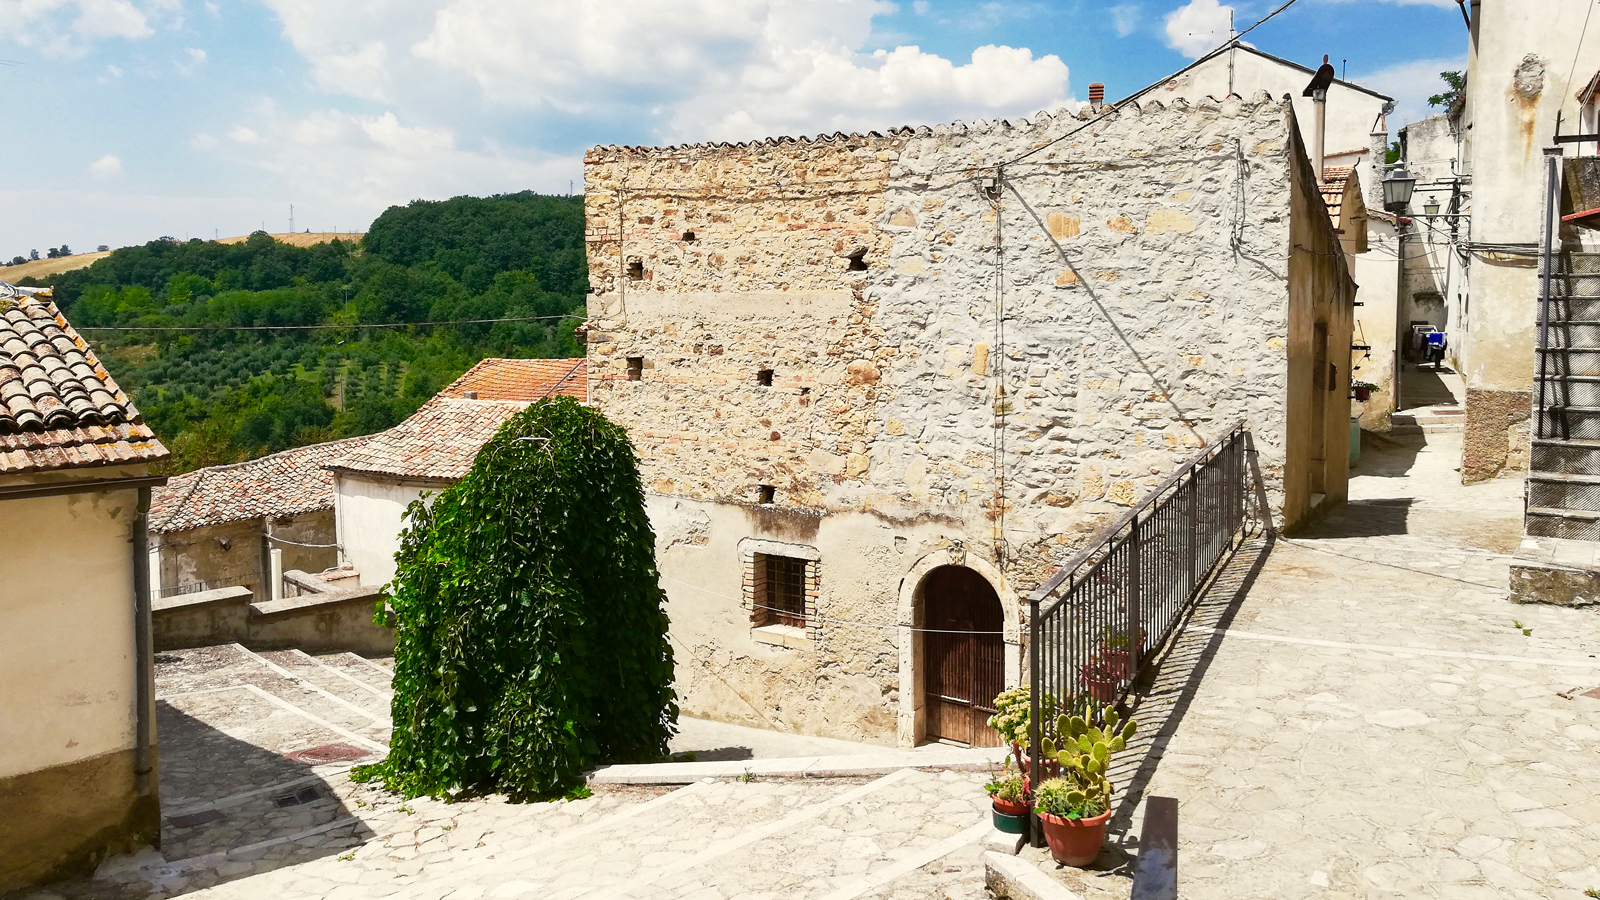 1 Homes In Italy These Two Websites Make Them Easier To Buy Cnn Travel